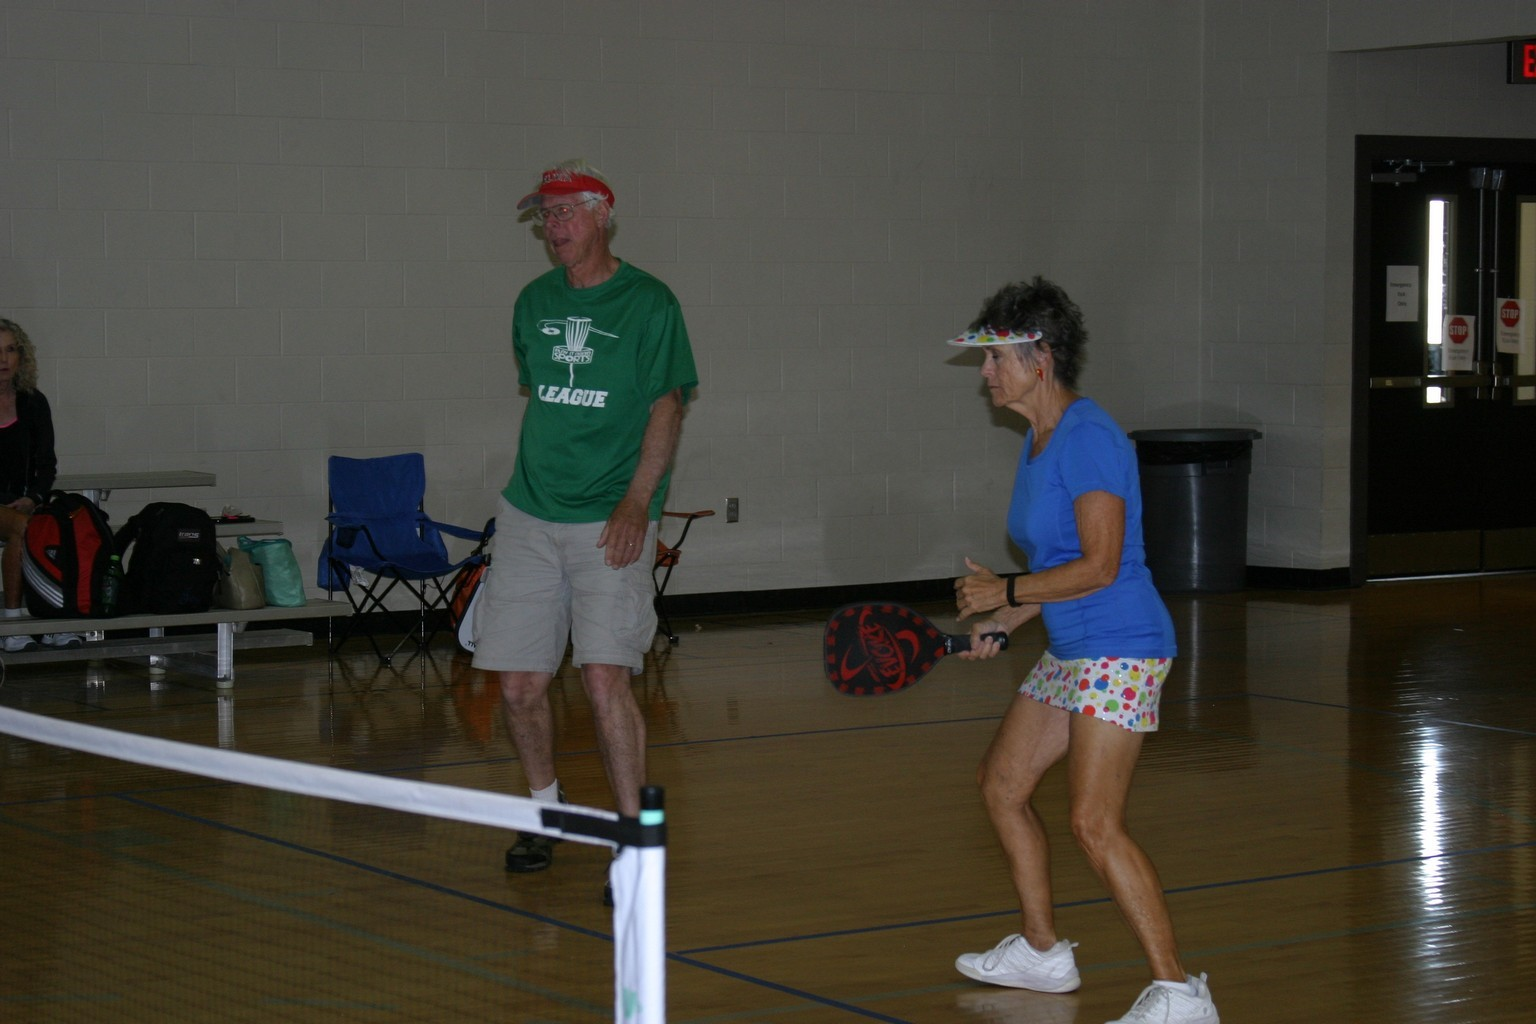 2016 Senior Games, trussville pickleball, birmingham pickleball, alabama pickleball